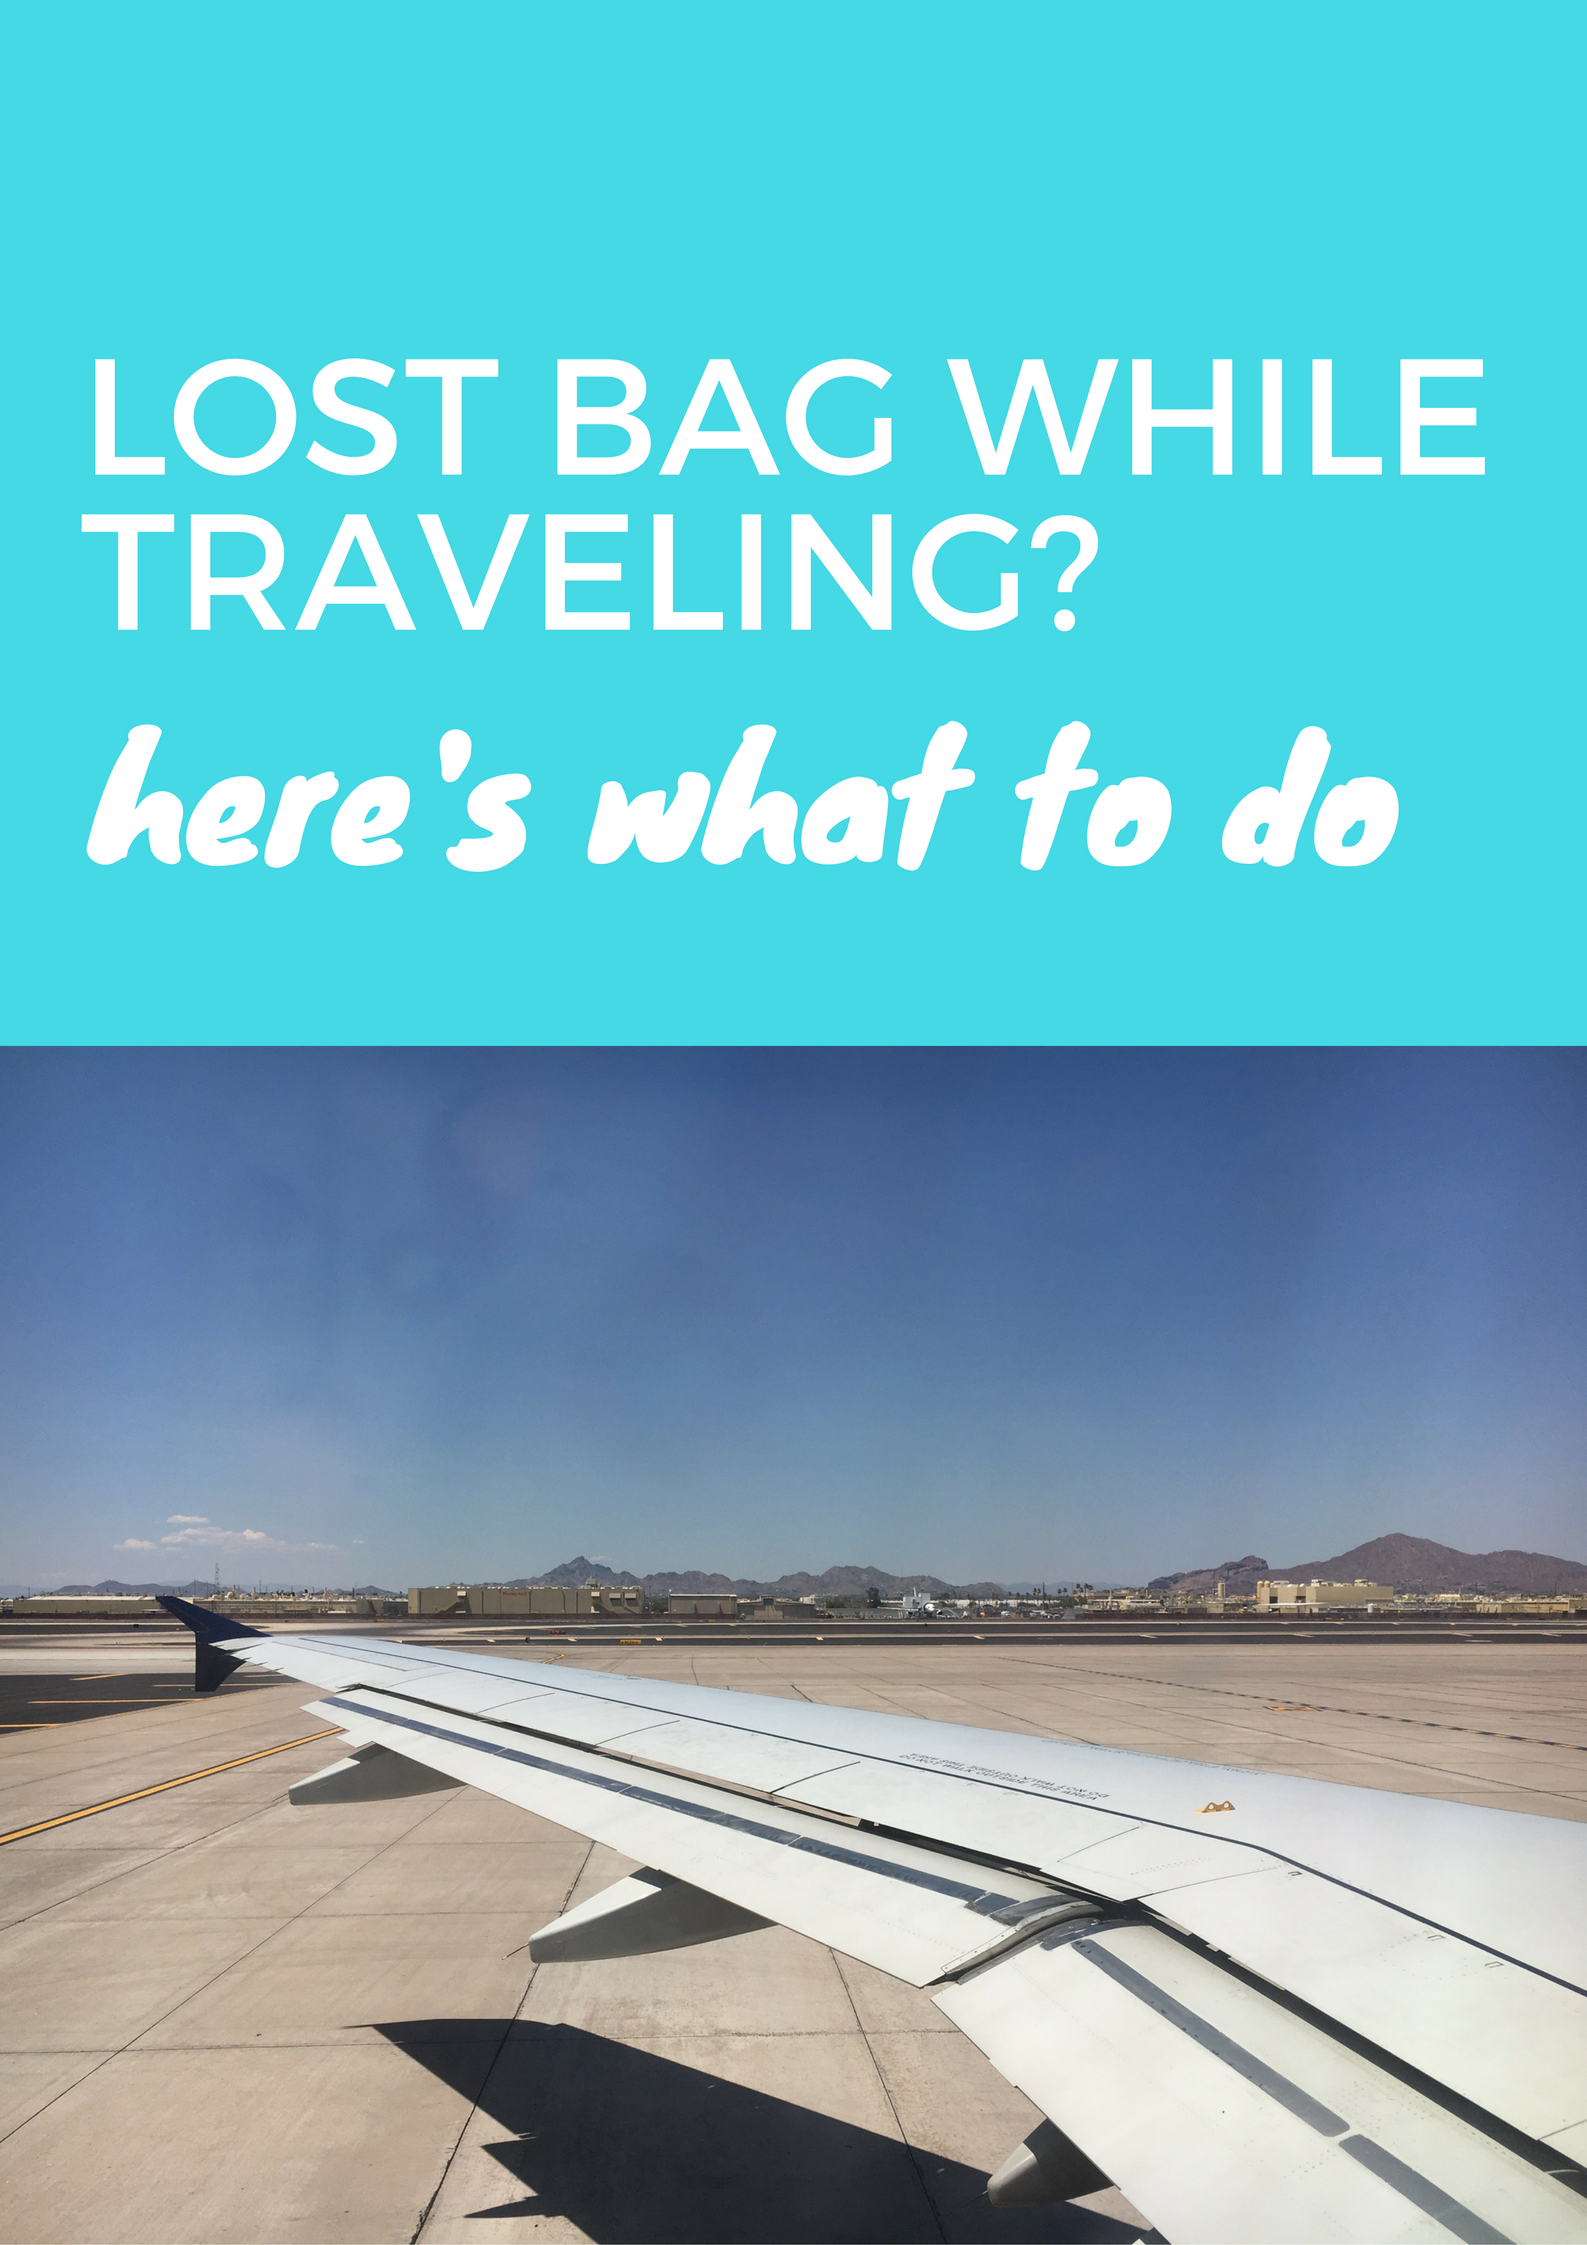 Lost Bag While Traveling? Here's What To Do